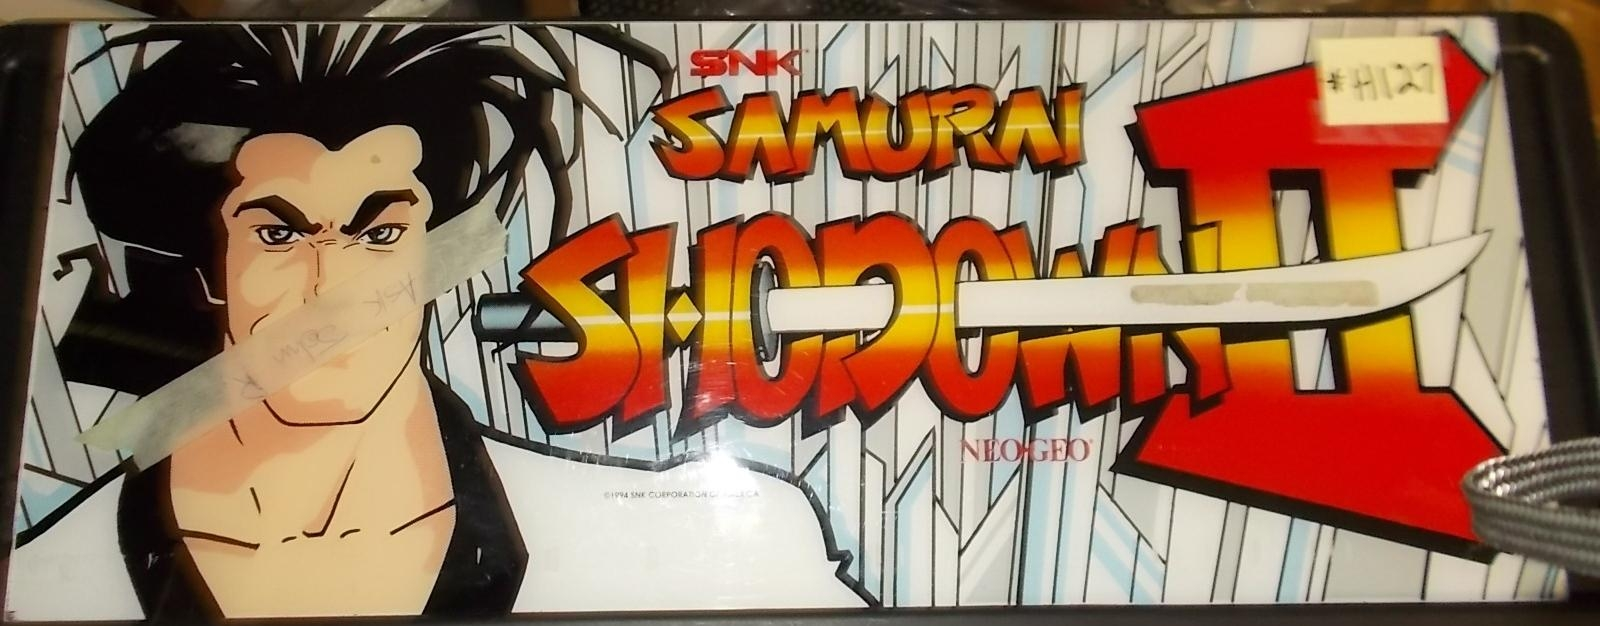 Samurai Shodown Arcade Machine Game Overhead Marquee Header For With Regard To Arcade Wall Art (Image 15 of 20)